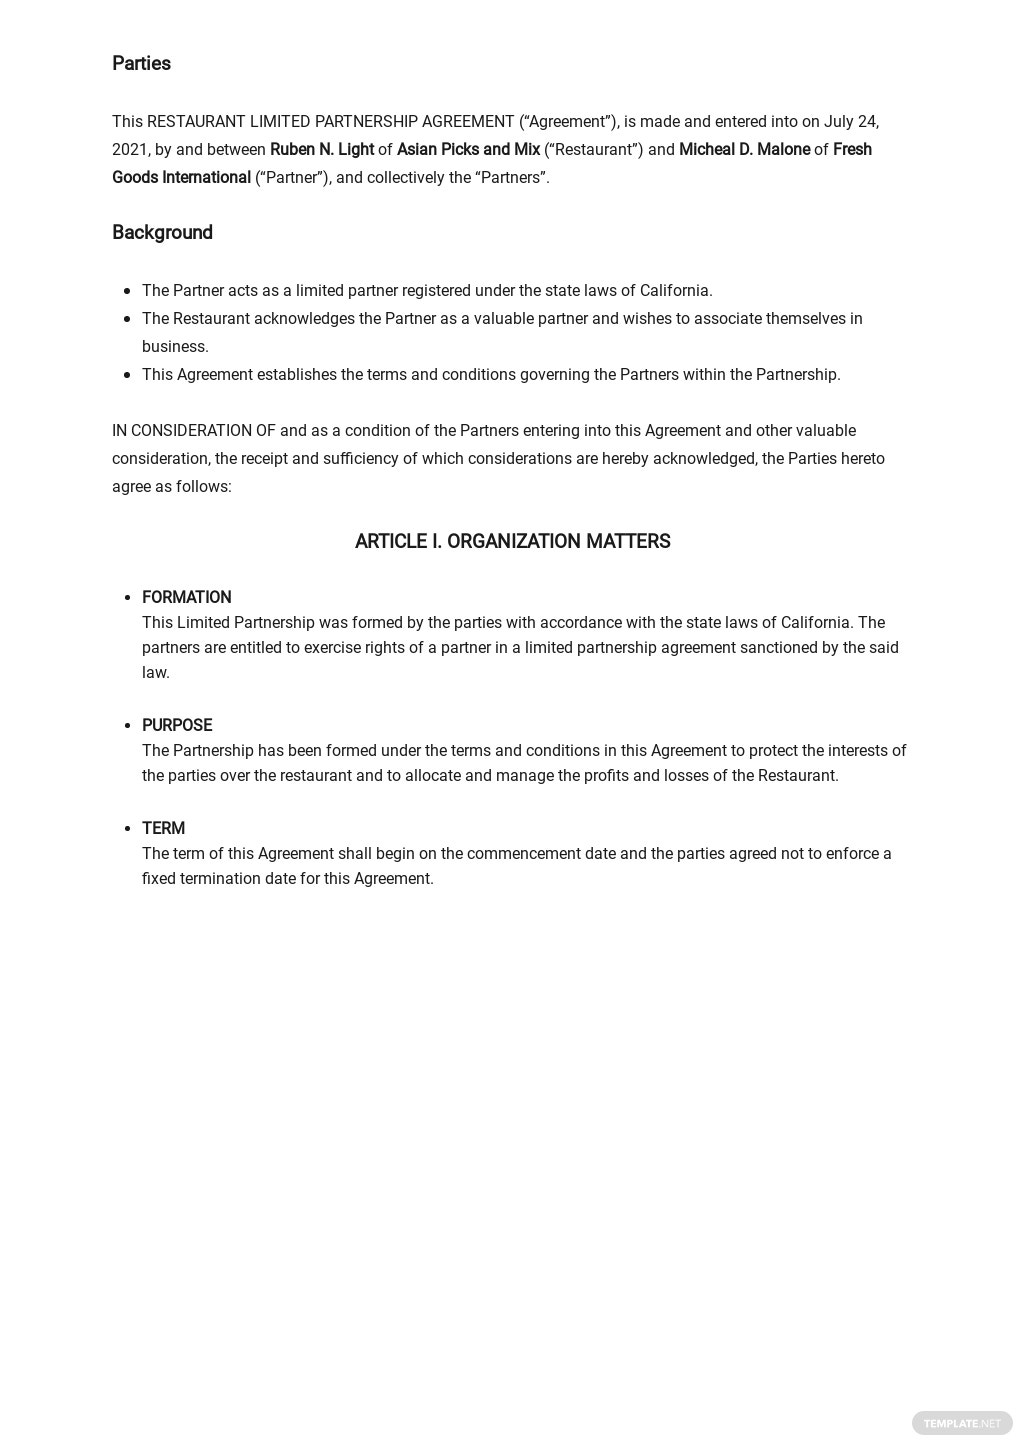 Restaurant Limited Partnership Agreement Template [Free PDF] - Google Docs, Word, Apple Pages, PDF